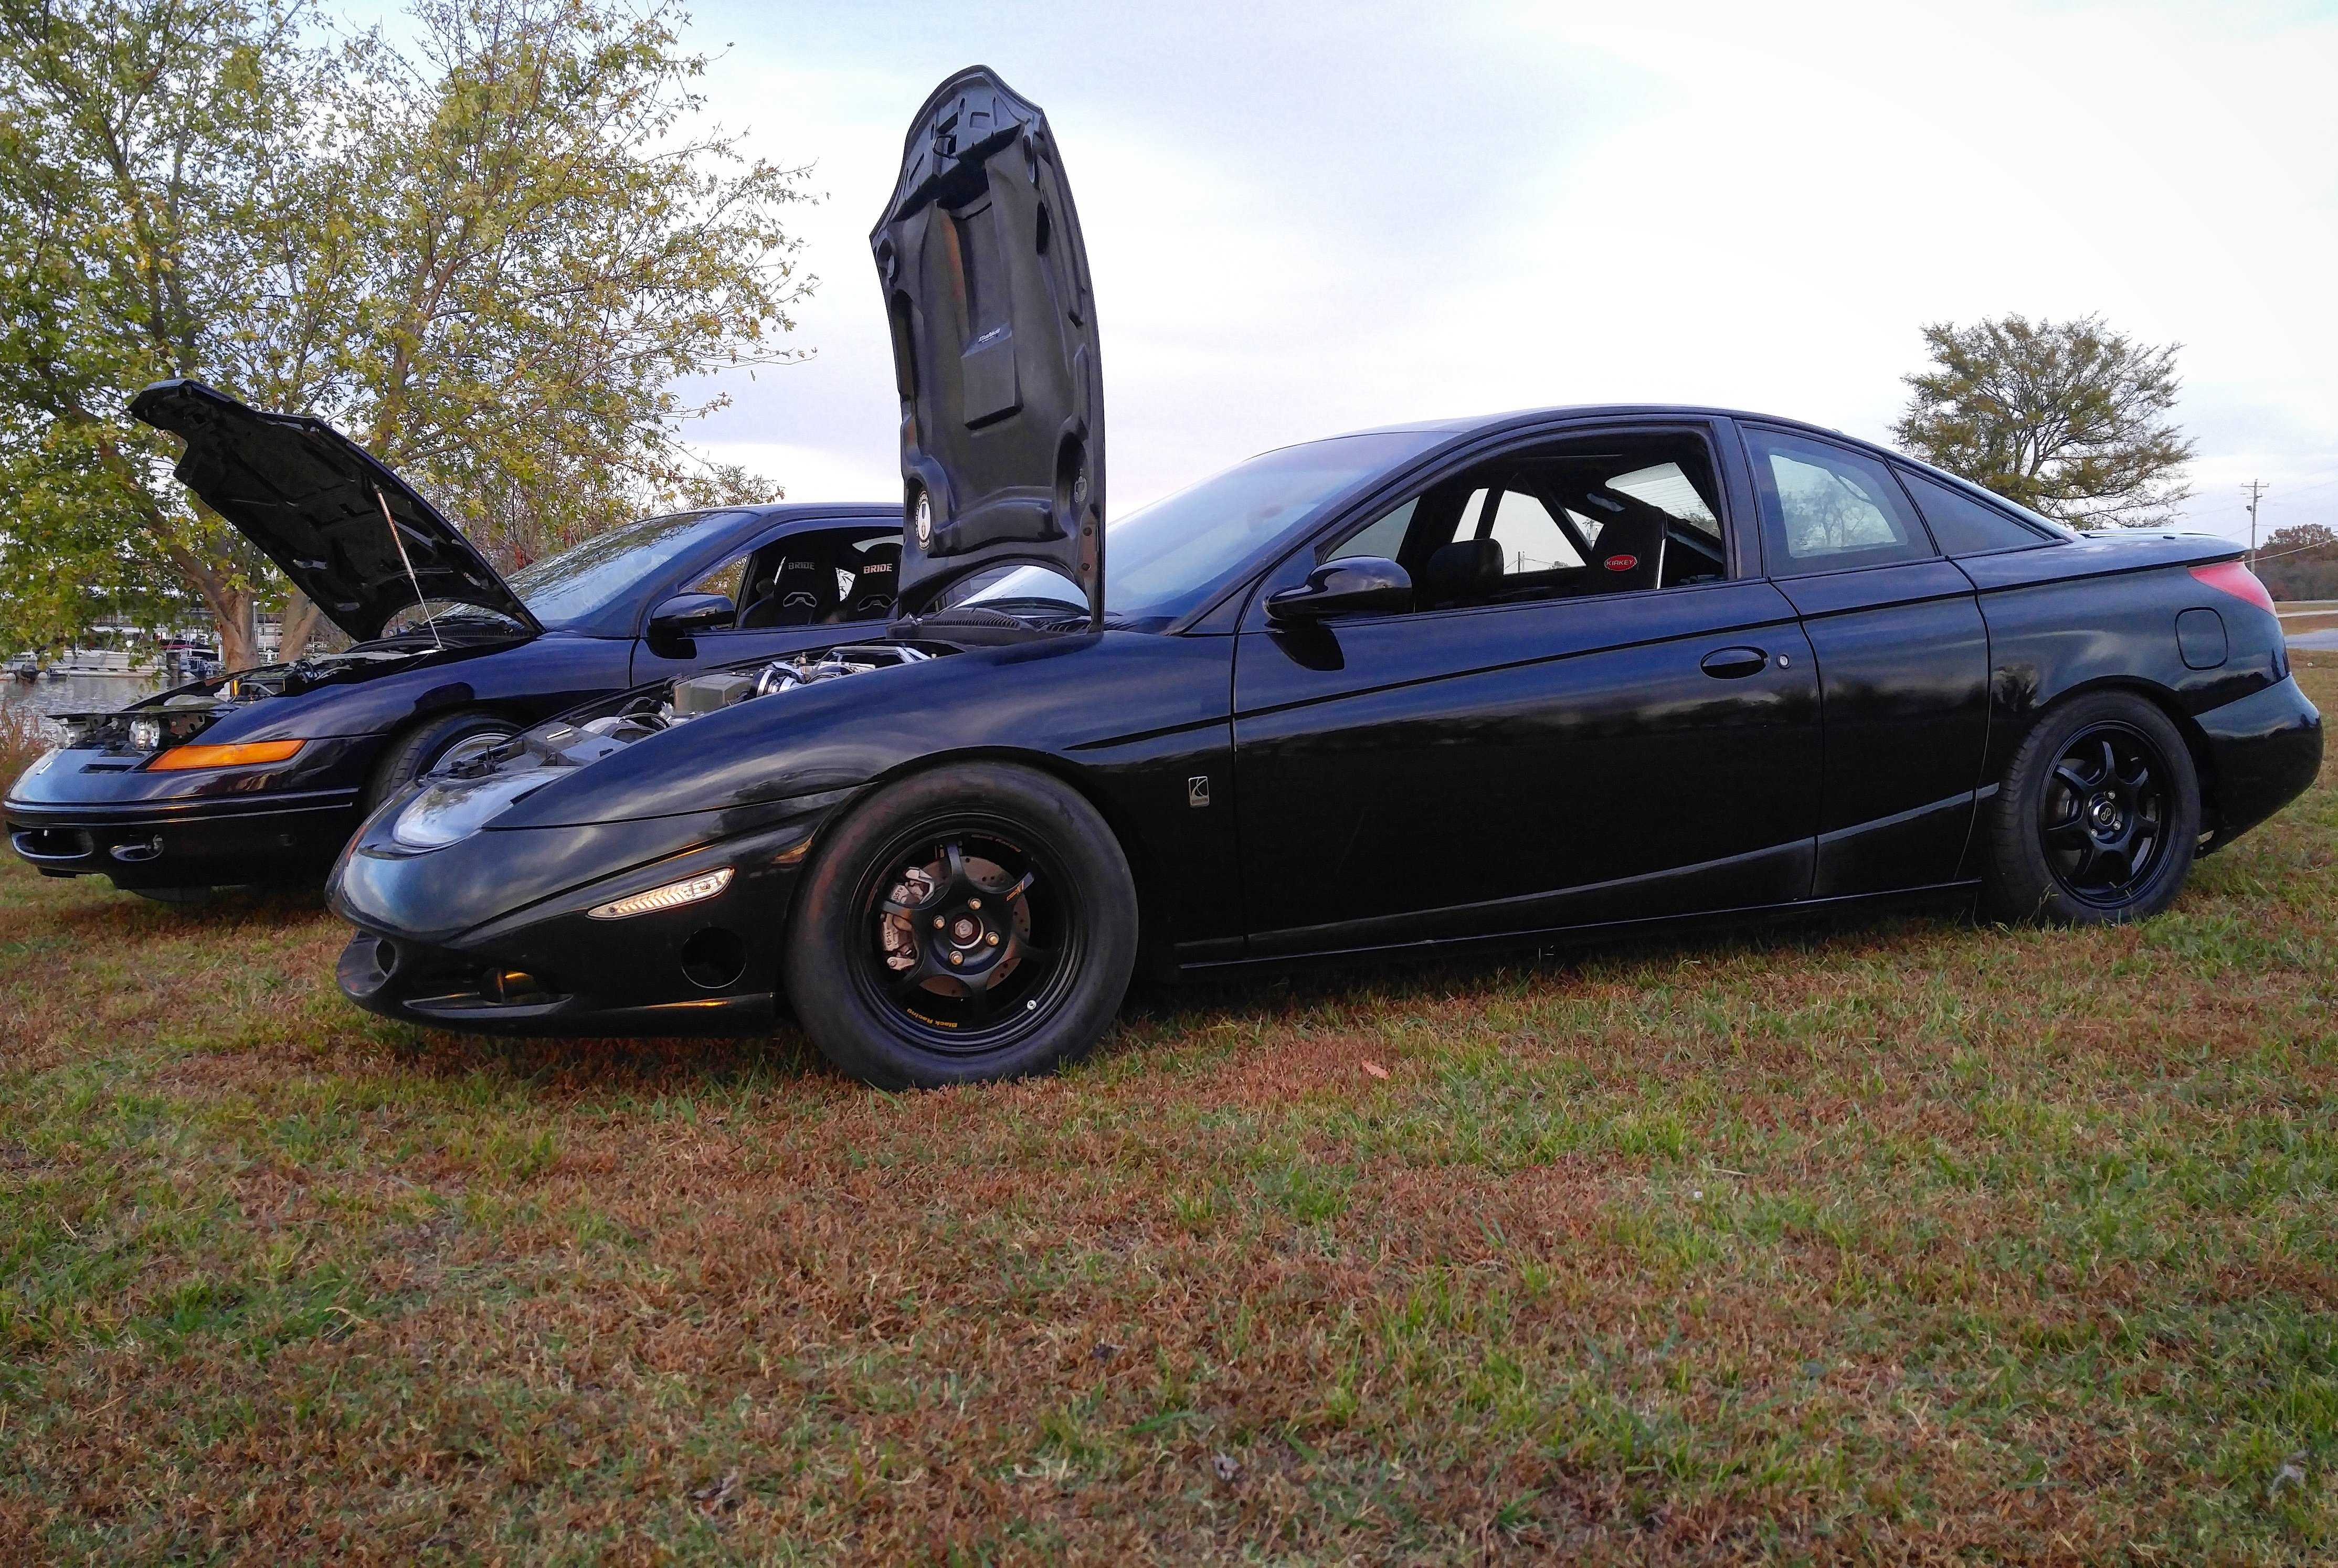 A Tuner Car Of A Different Feather: Aaron Cox's Saturn SC2